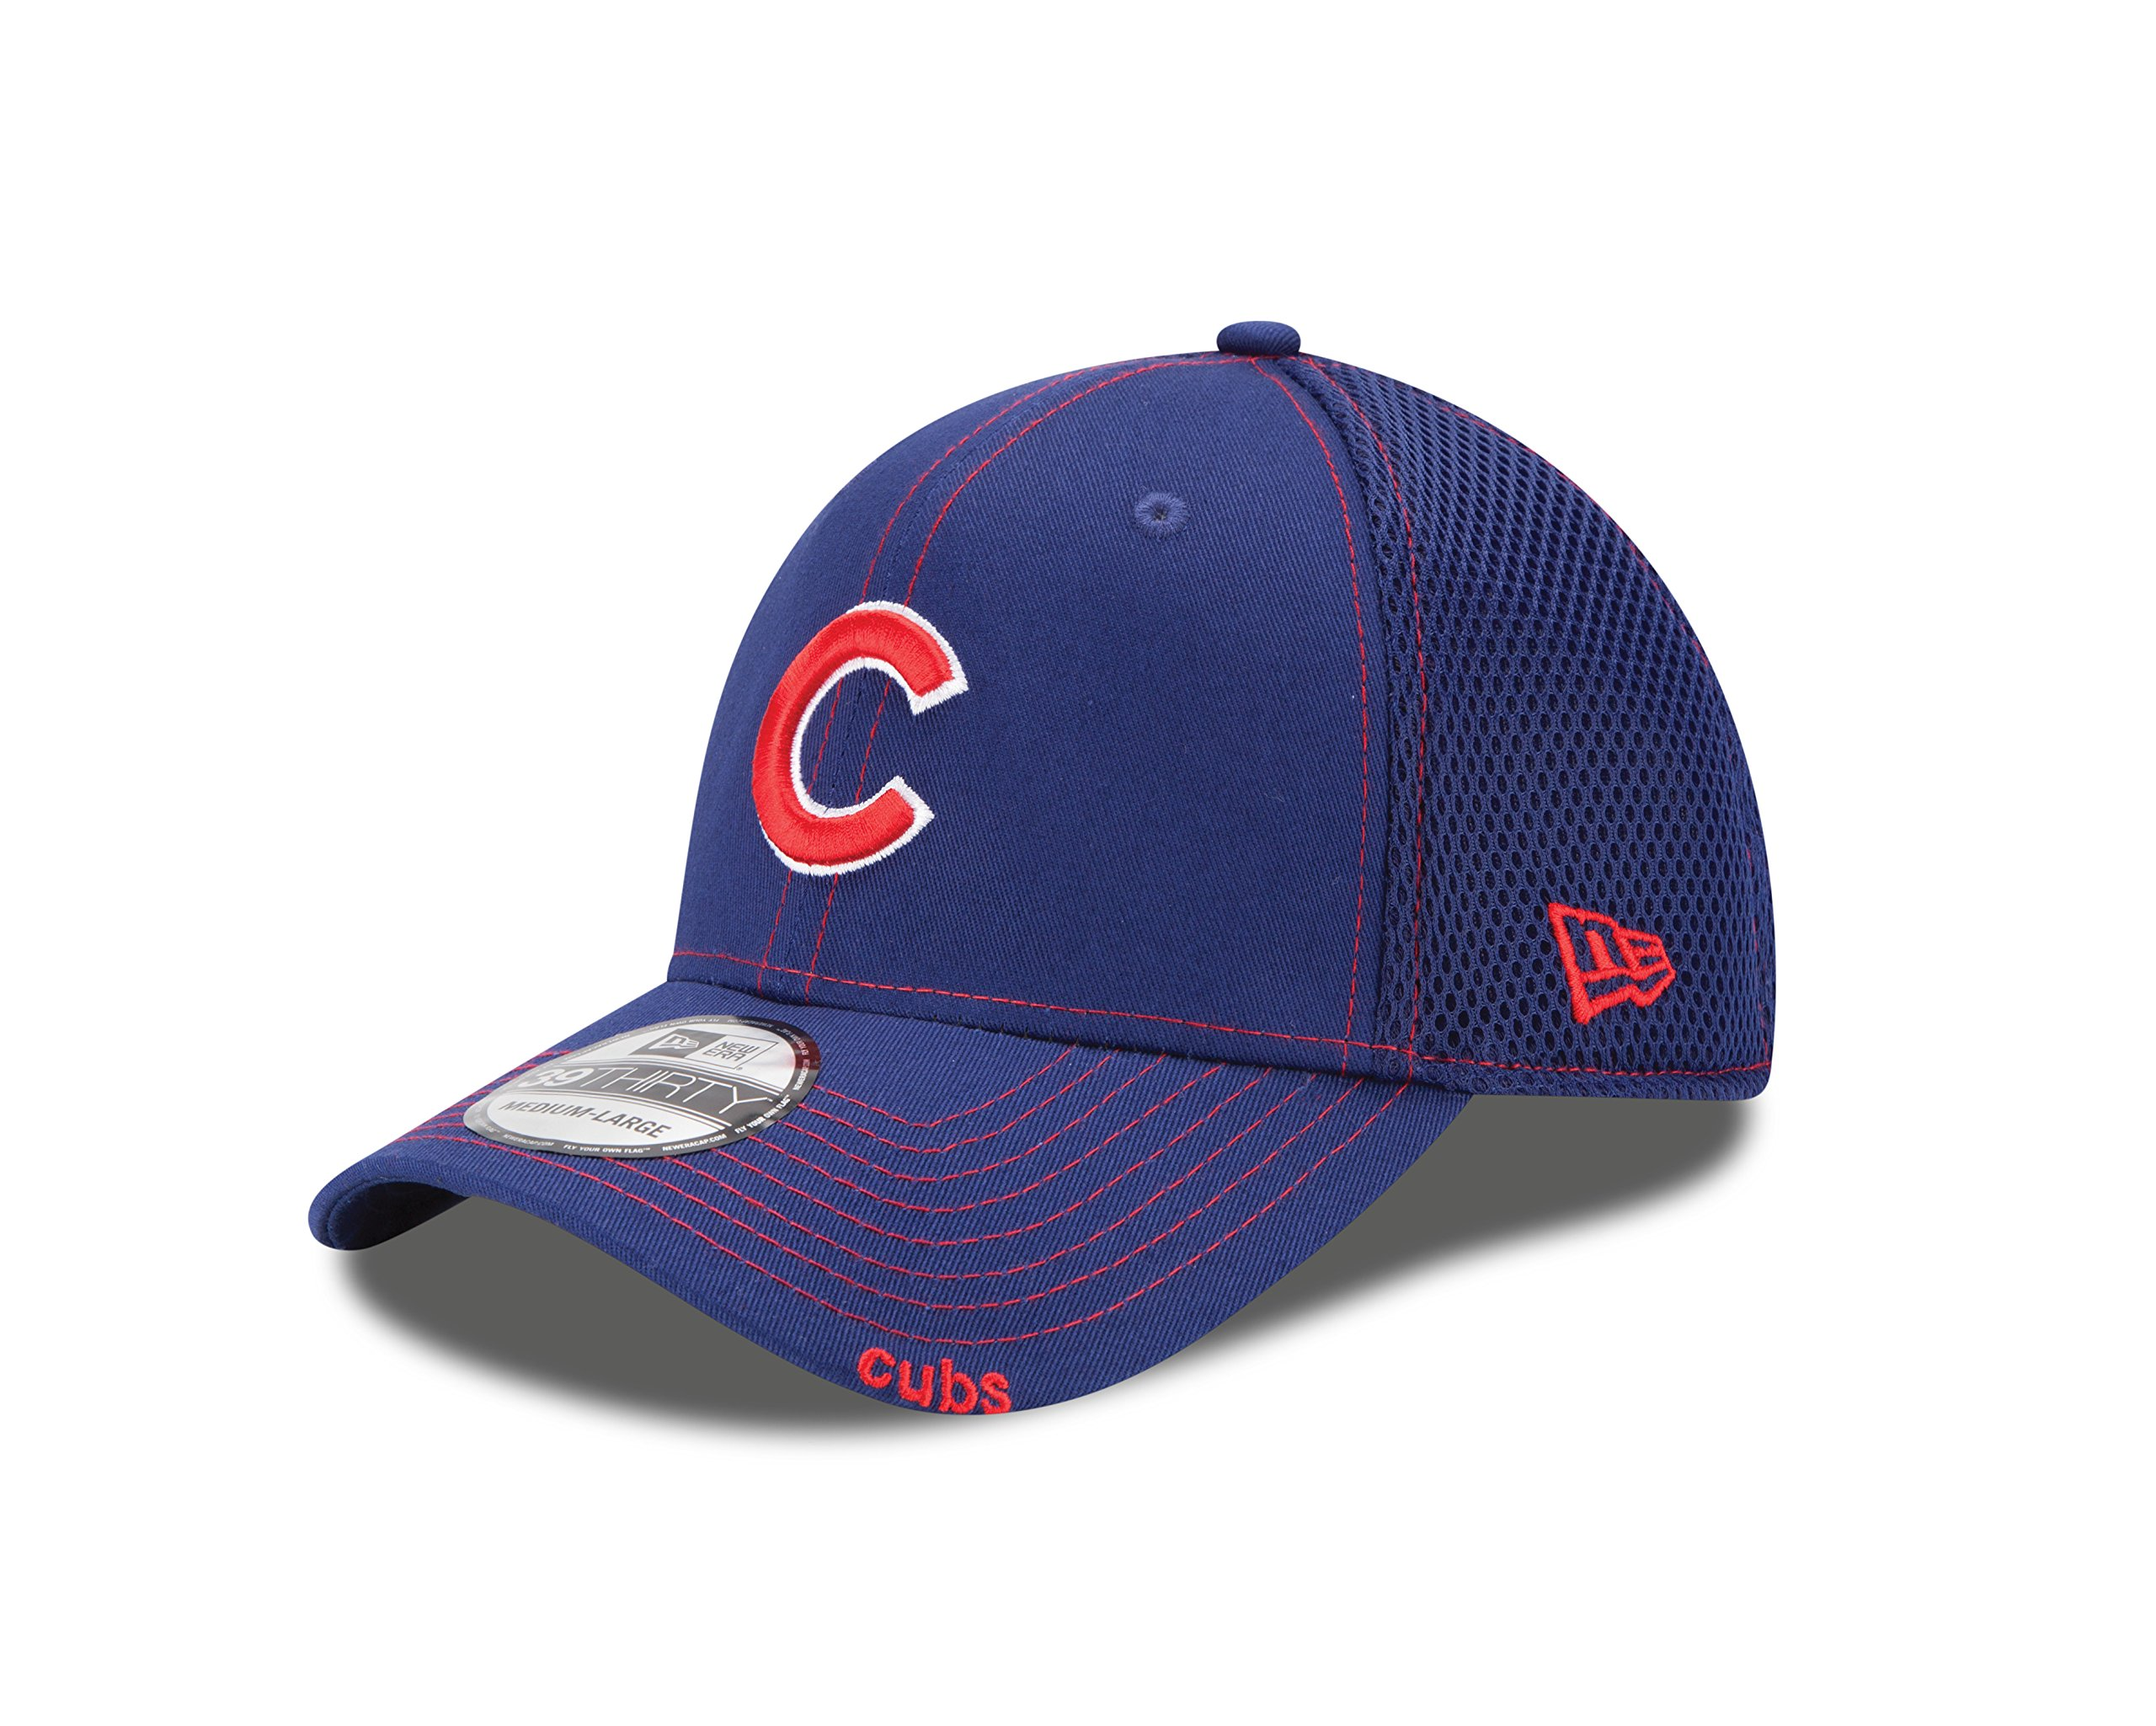 MLB Chicago Cubs 2014 NEO 39Thirty Stretch Fit Cap, Blue, Large/X-Large by New Era